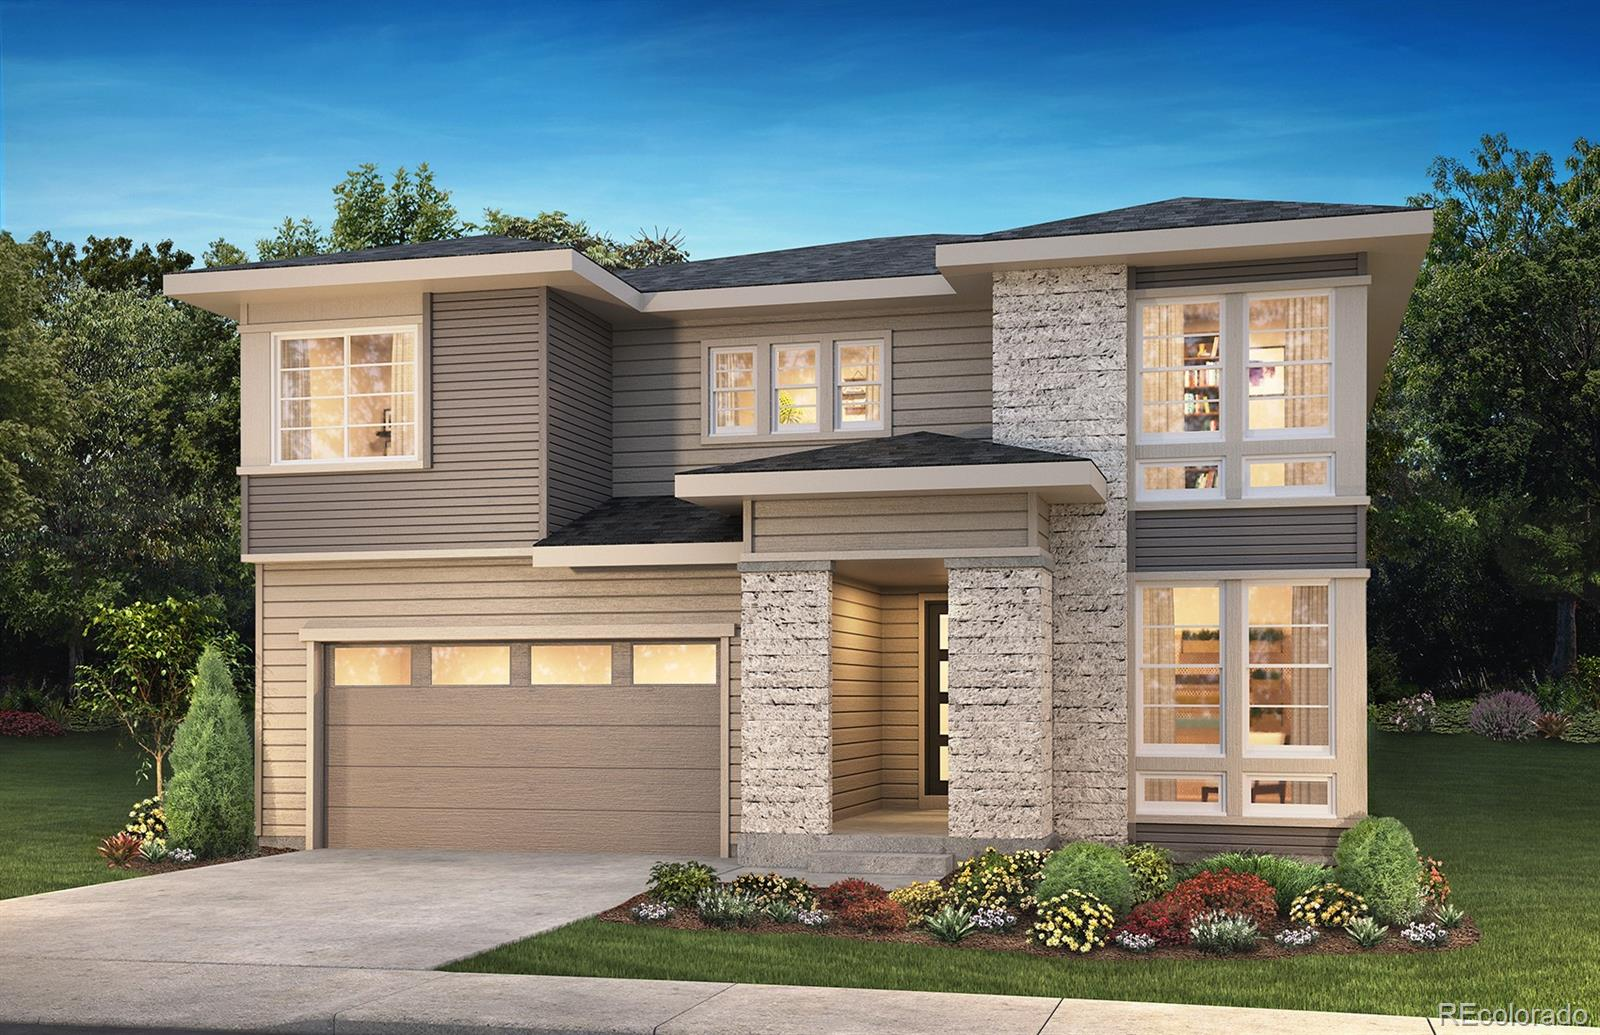 """Available June/July 2020! This gorgeous Emerson 2 story in The Canyons features 4 beds, 3.5 baths, loft, upper laundry, great room, dining area, kitchen, 3 car garage (2 + 1 tandem), unfinished walk-out basement and more. Beautiful design finishes and upgrades include 36"""" GE Cafe™ stainless steel gas appliances; Aristokraft® Brellin Purestyle Glacier Gray and Winstead Maple Flagstone cabinetry; Fireplace with full height stacked tile and mantel at great room; Kitchen with large island and walk-in pantry; Covered outdoor living area with optional gas line; Craftsman iron stair rails; tile in all wet areas. This beautiful home thoughtfully combines elegance and luxury. Don't miss your opportunity. Welcome Home!"""